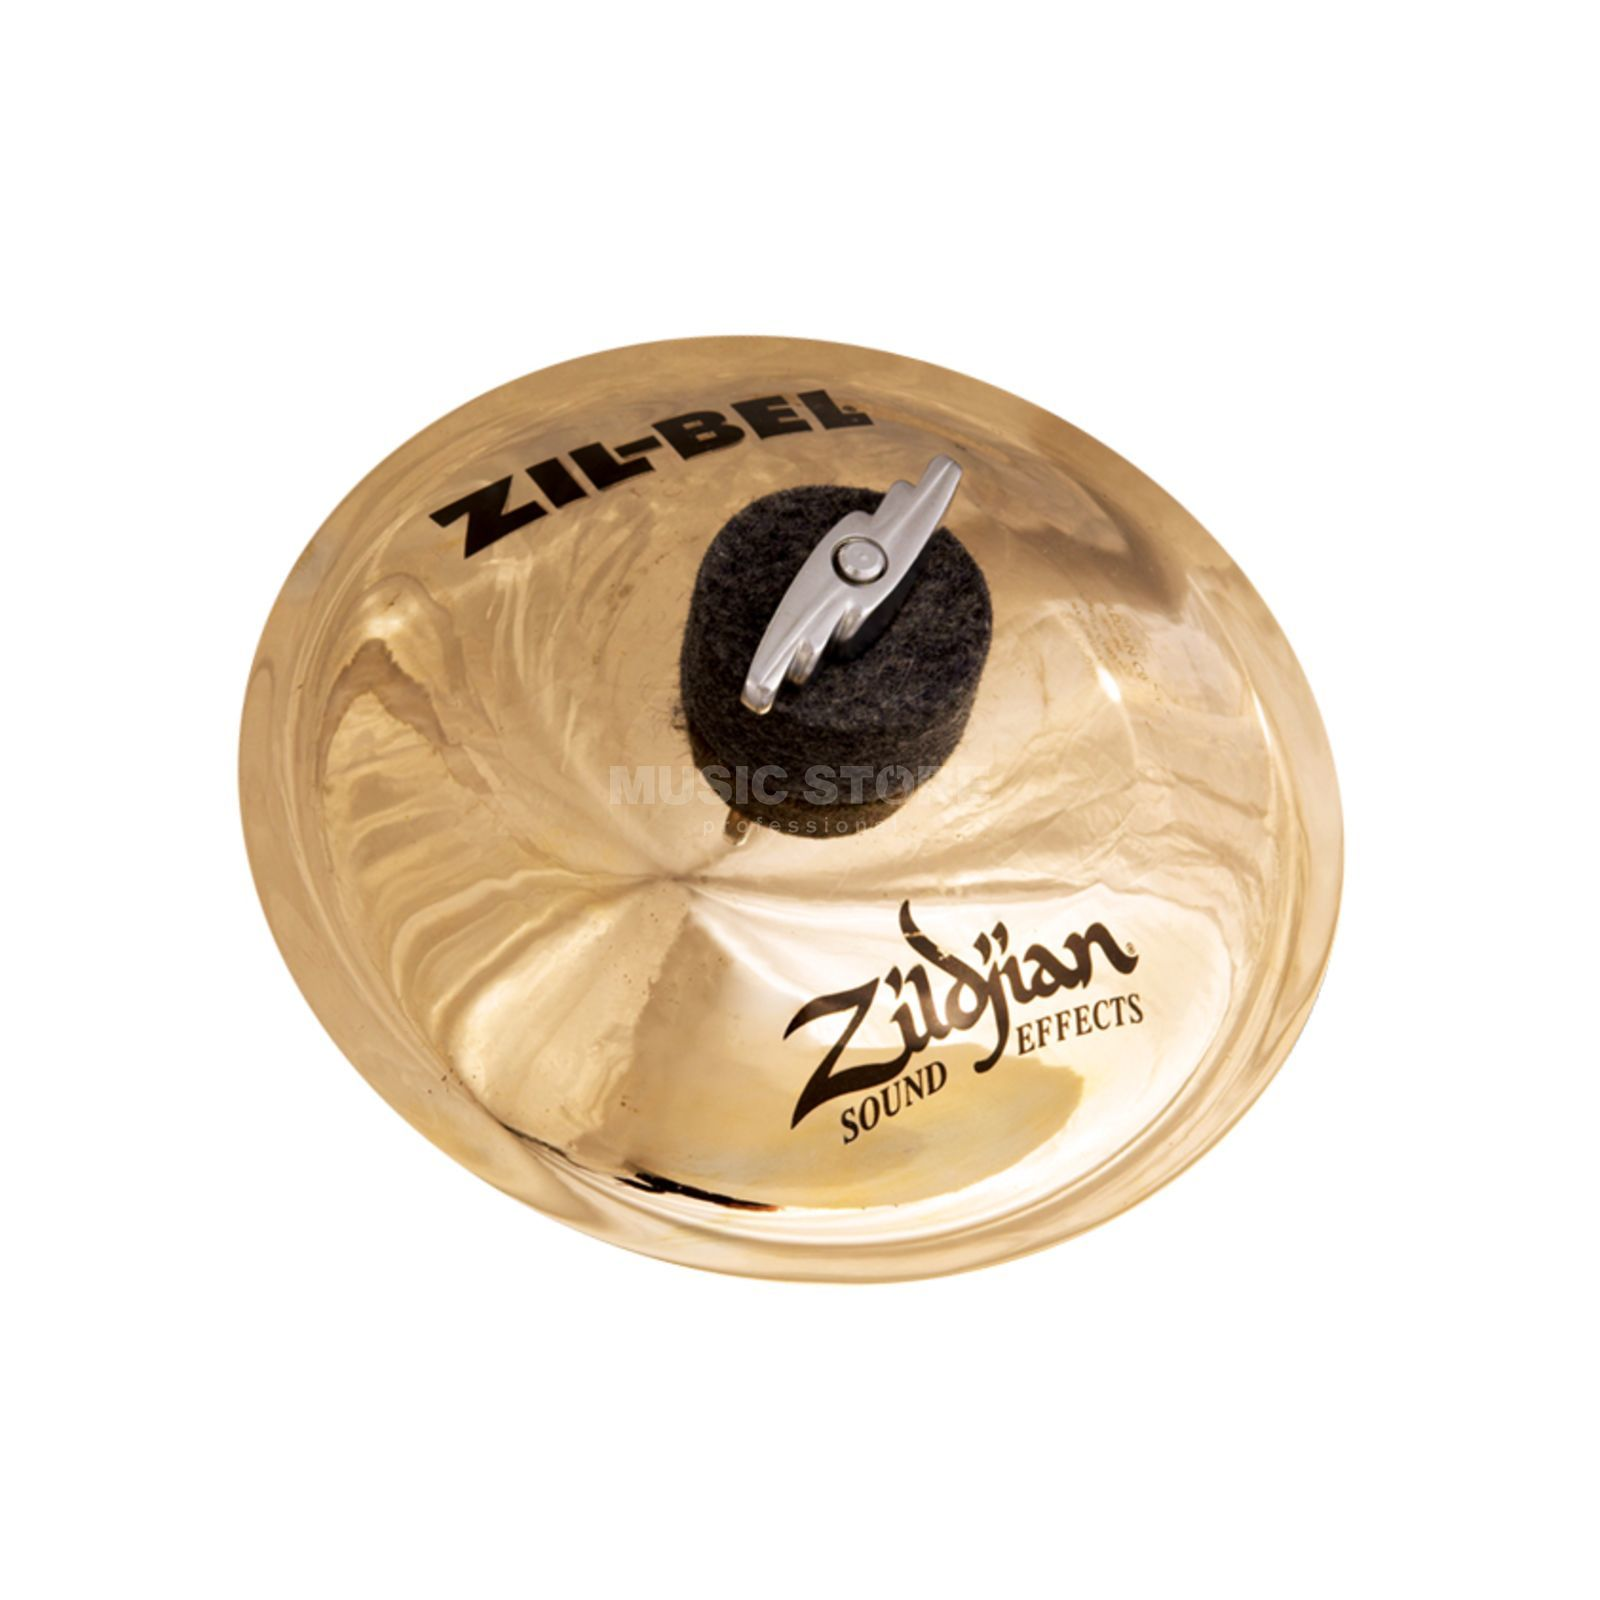 "Zildjian A' Zildjian ZilBel Small 6"", Brilliant Finish Produktbild"